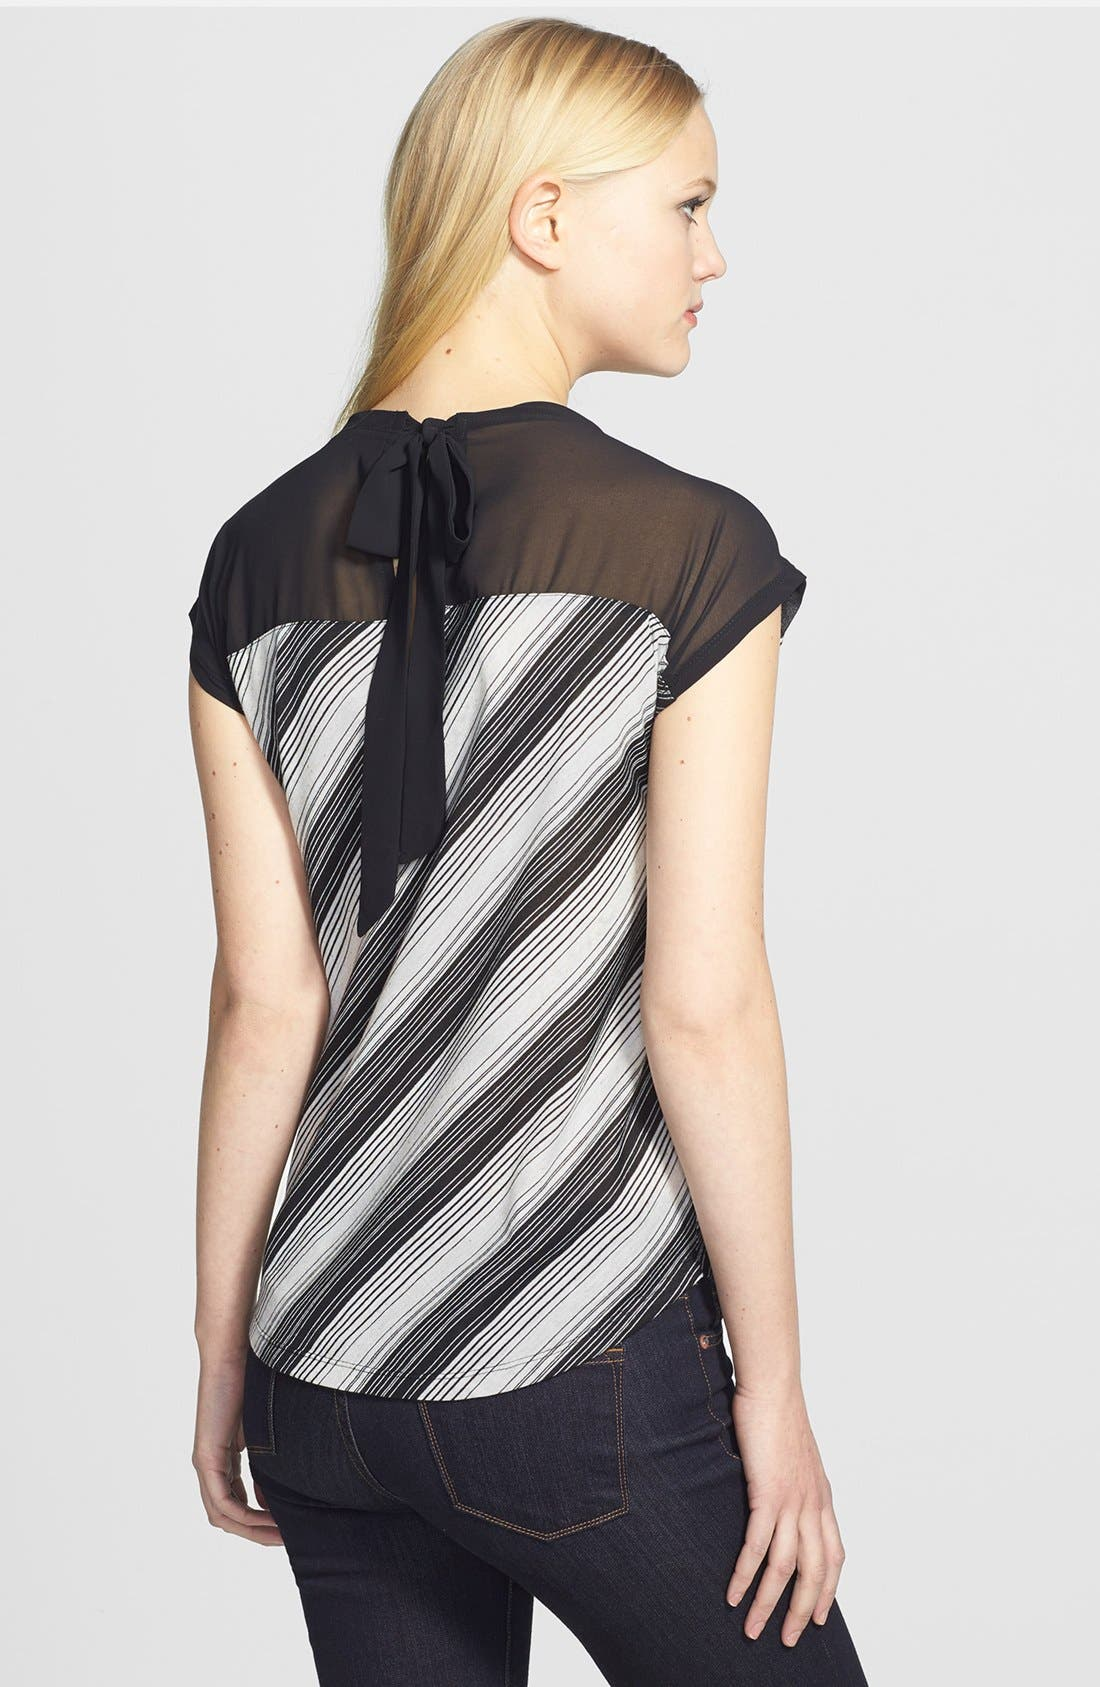 Main Image - Two by Vince Camuto 'Close Stripe' Back Tie Top